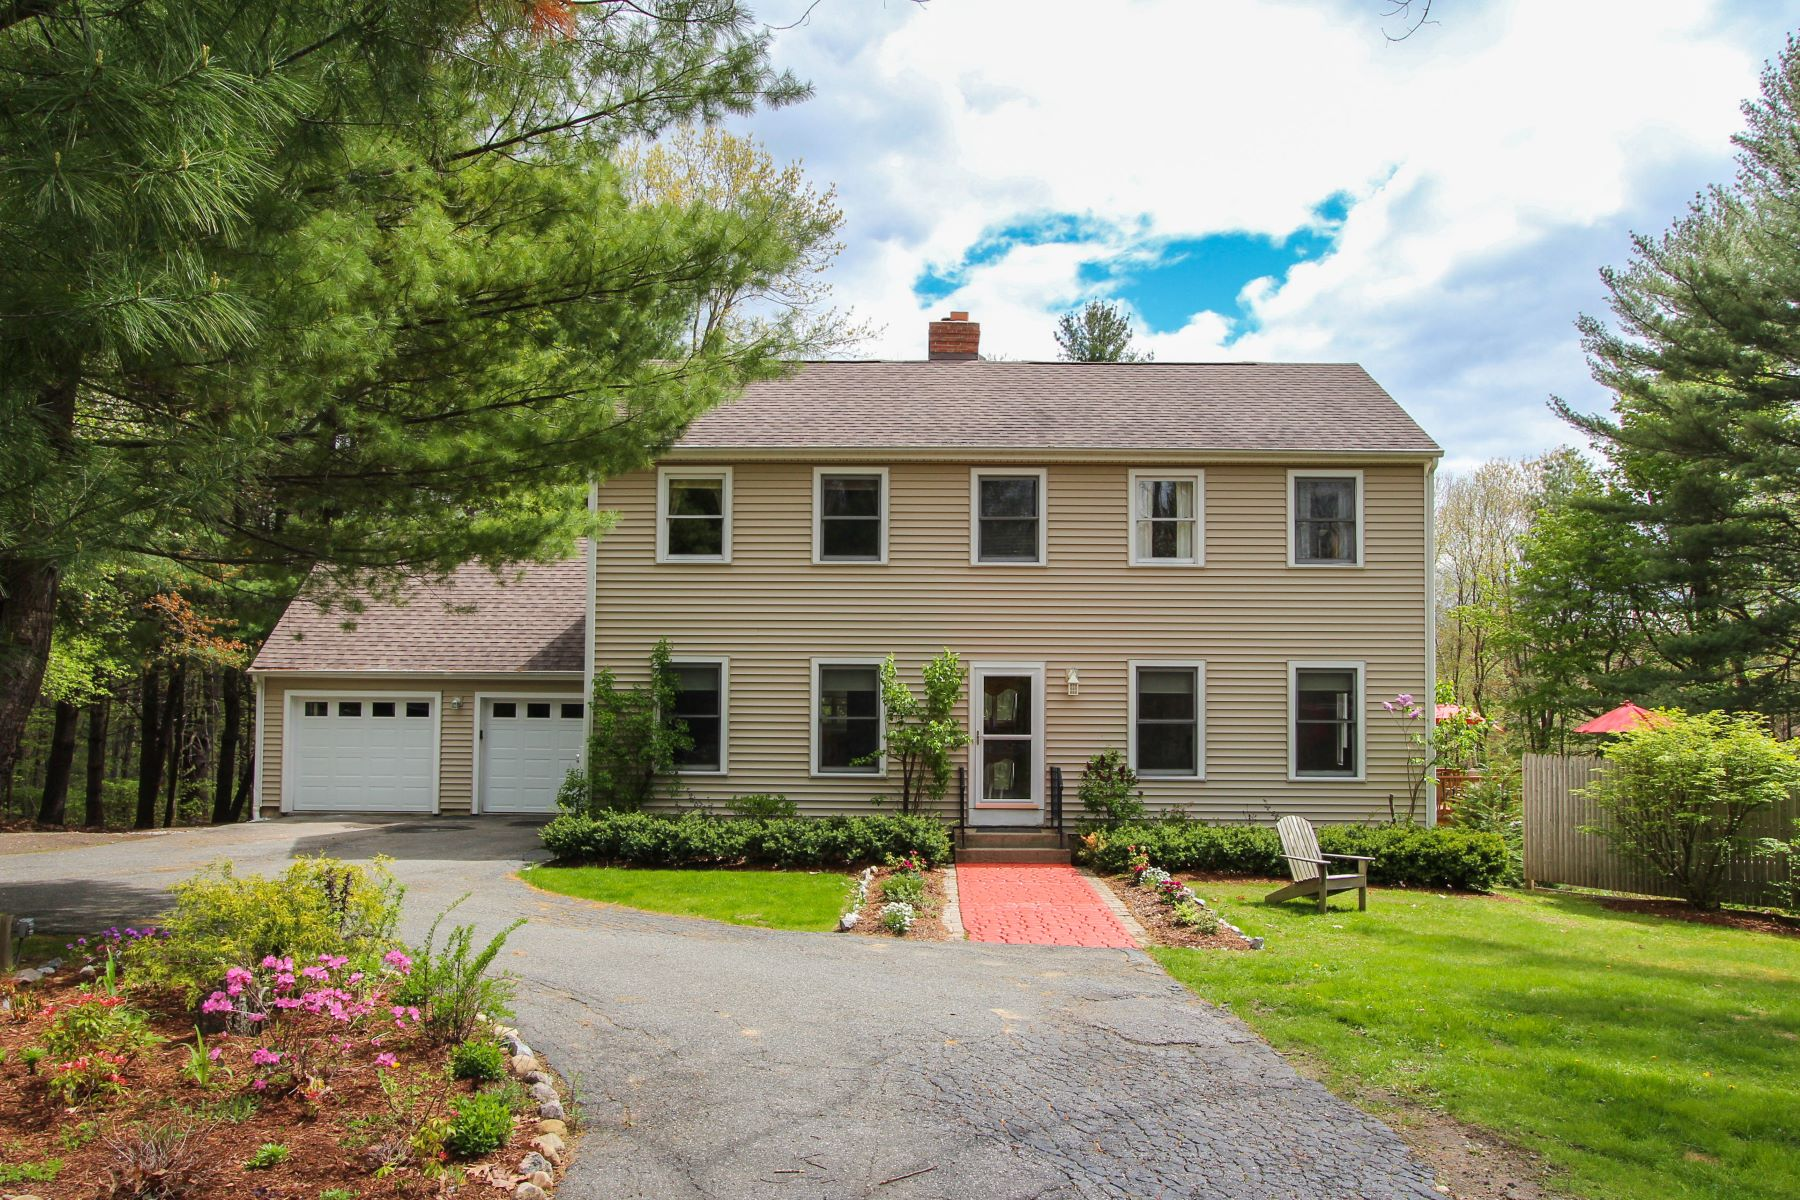 واحد منزل الأسرة للـ Sale في Comfortable Colonial with Pond 66 Goodhouse Road, Litchfield, Connecticut, 06759 United States